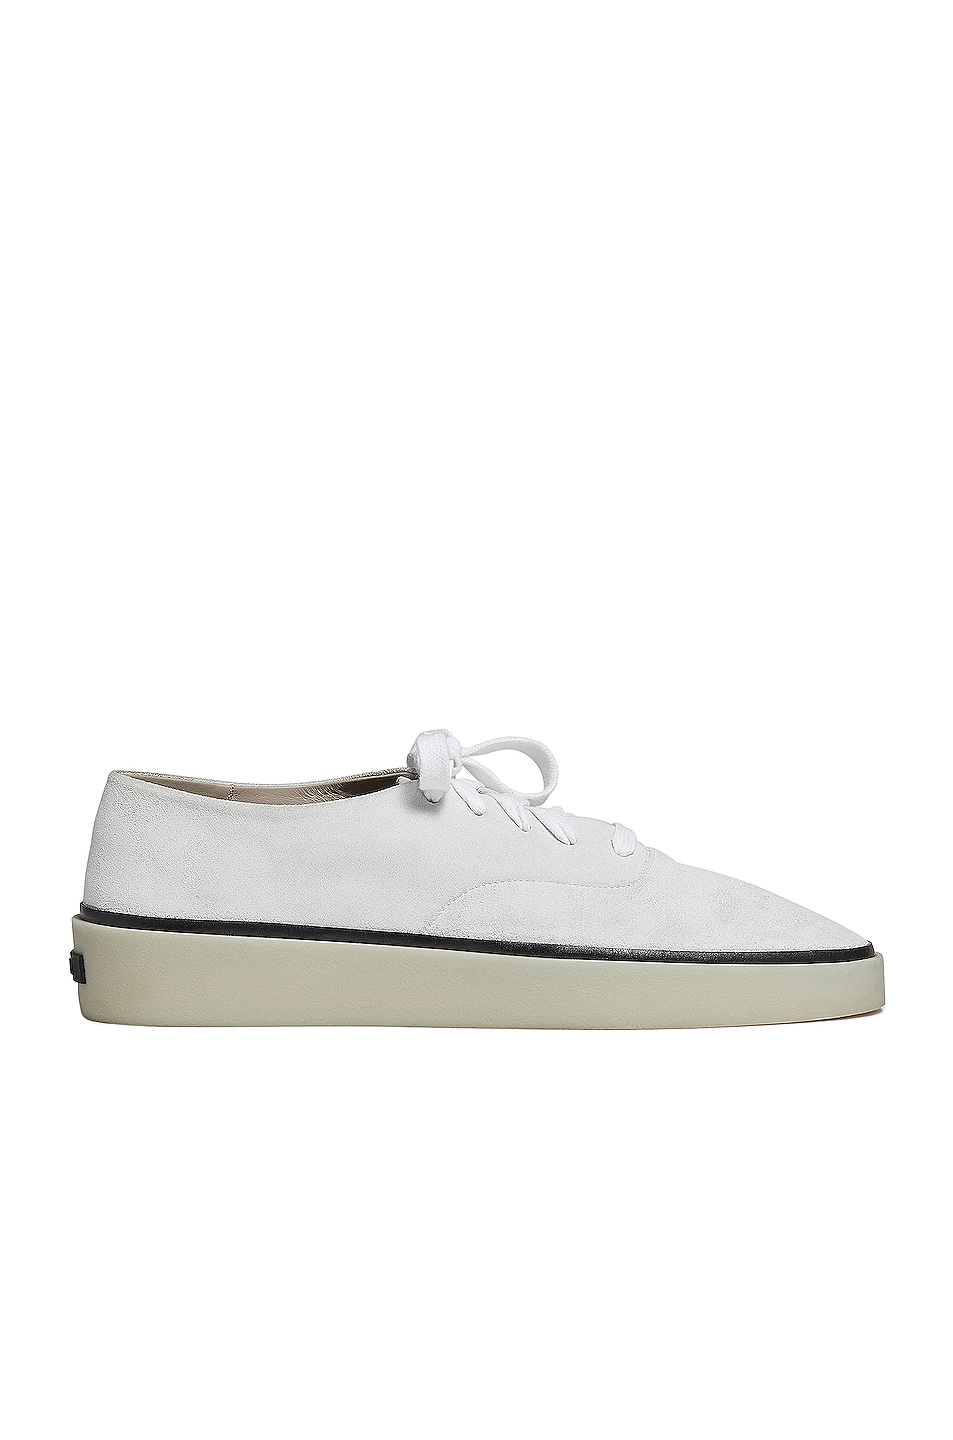 Image 1 of Fear of God Exclusively for Ermenegildo Zegna Suede Leather Laced Sneaker in Off White